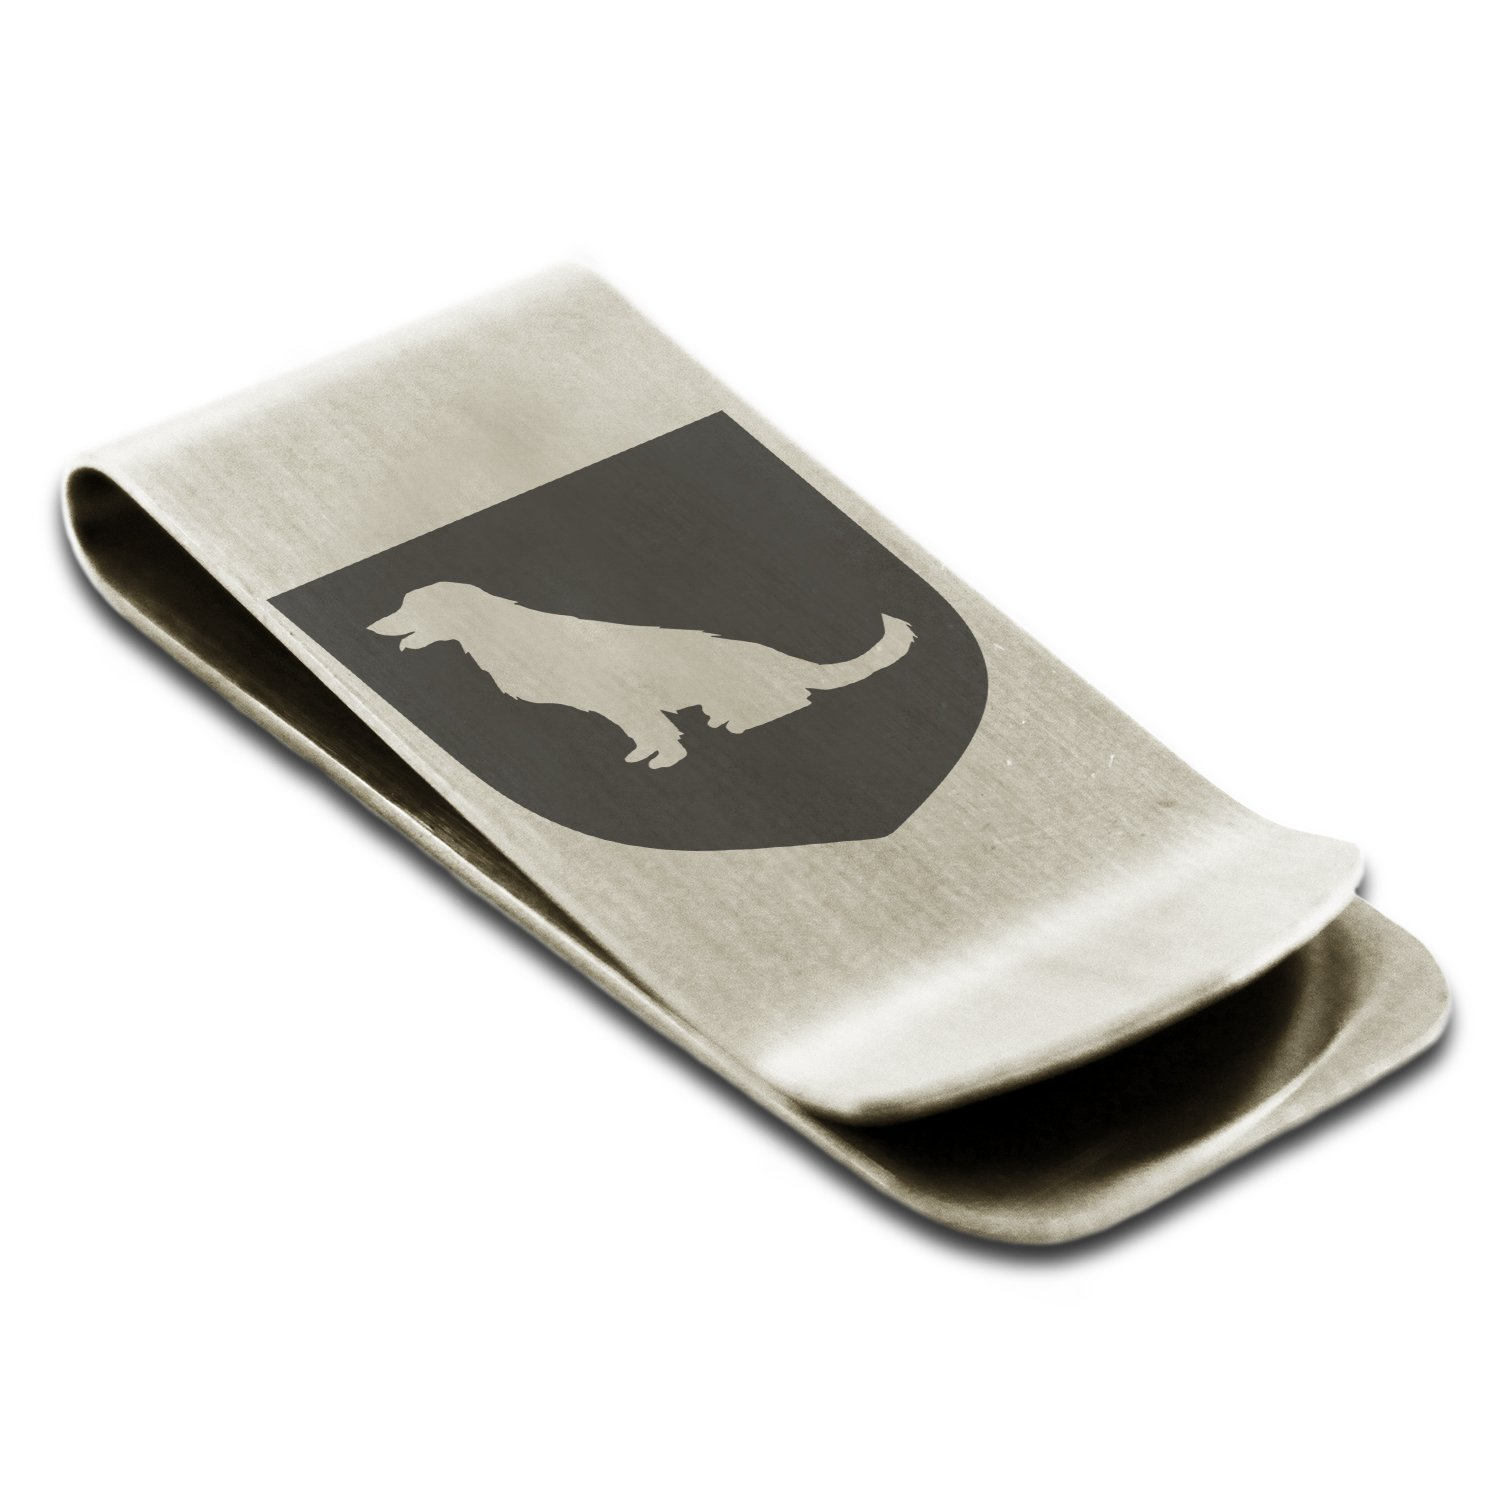 Stainless Steel Dog Loyalty Coat of Arms Shield Symbol Engraved Money Clip Credit Card Holder